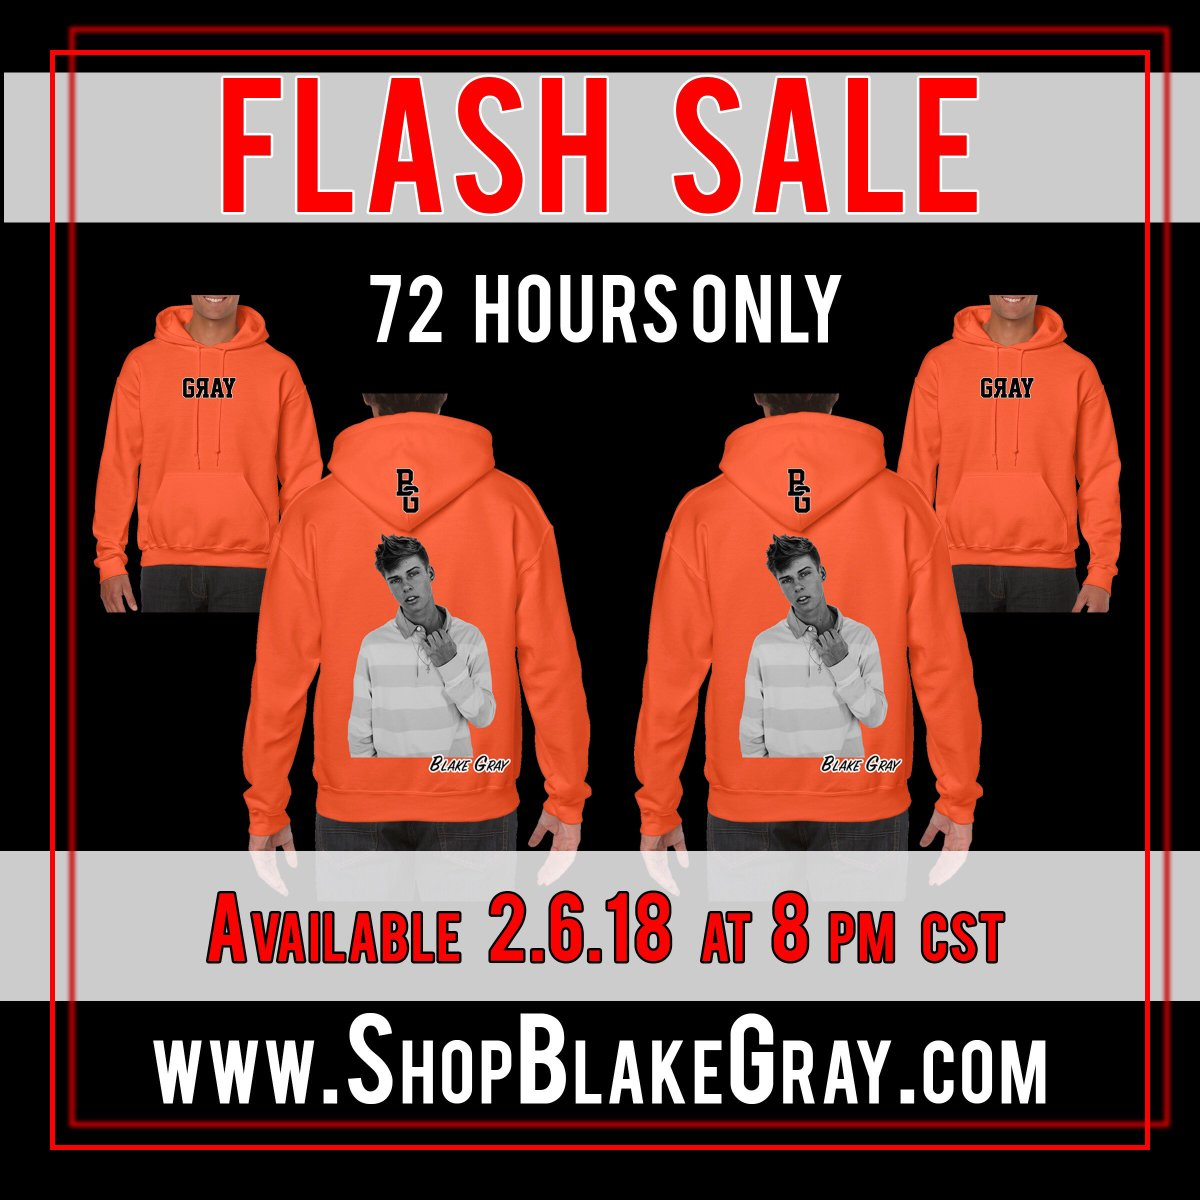 LESS THAN 24 HOURS UNTIL THE SALE!! Firs...